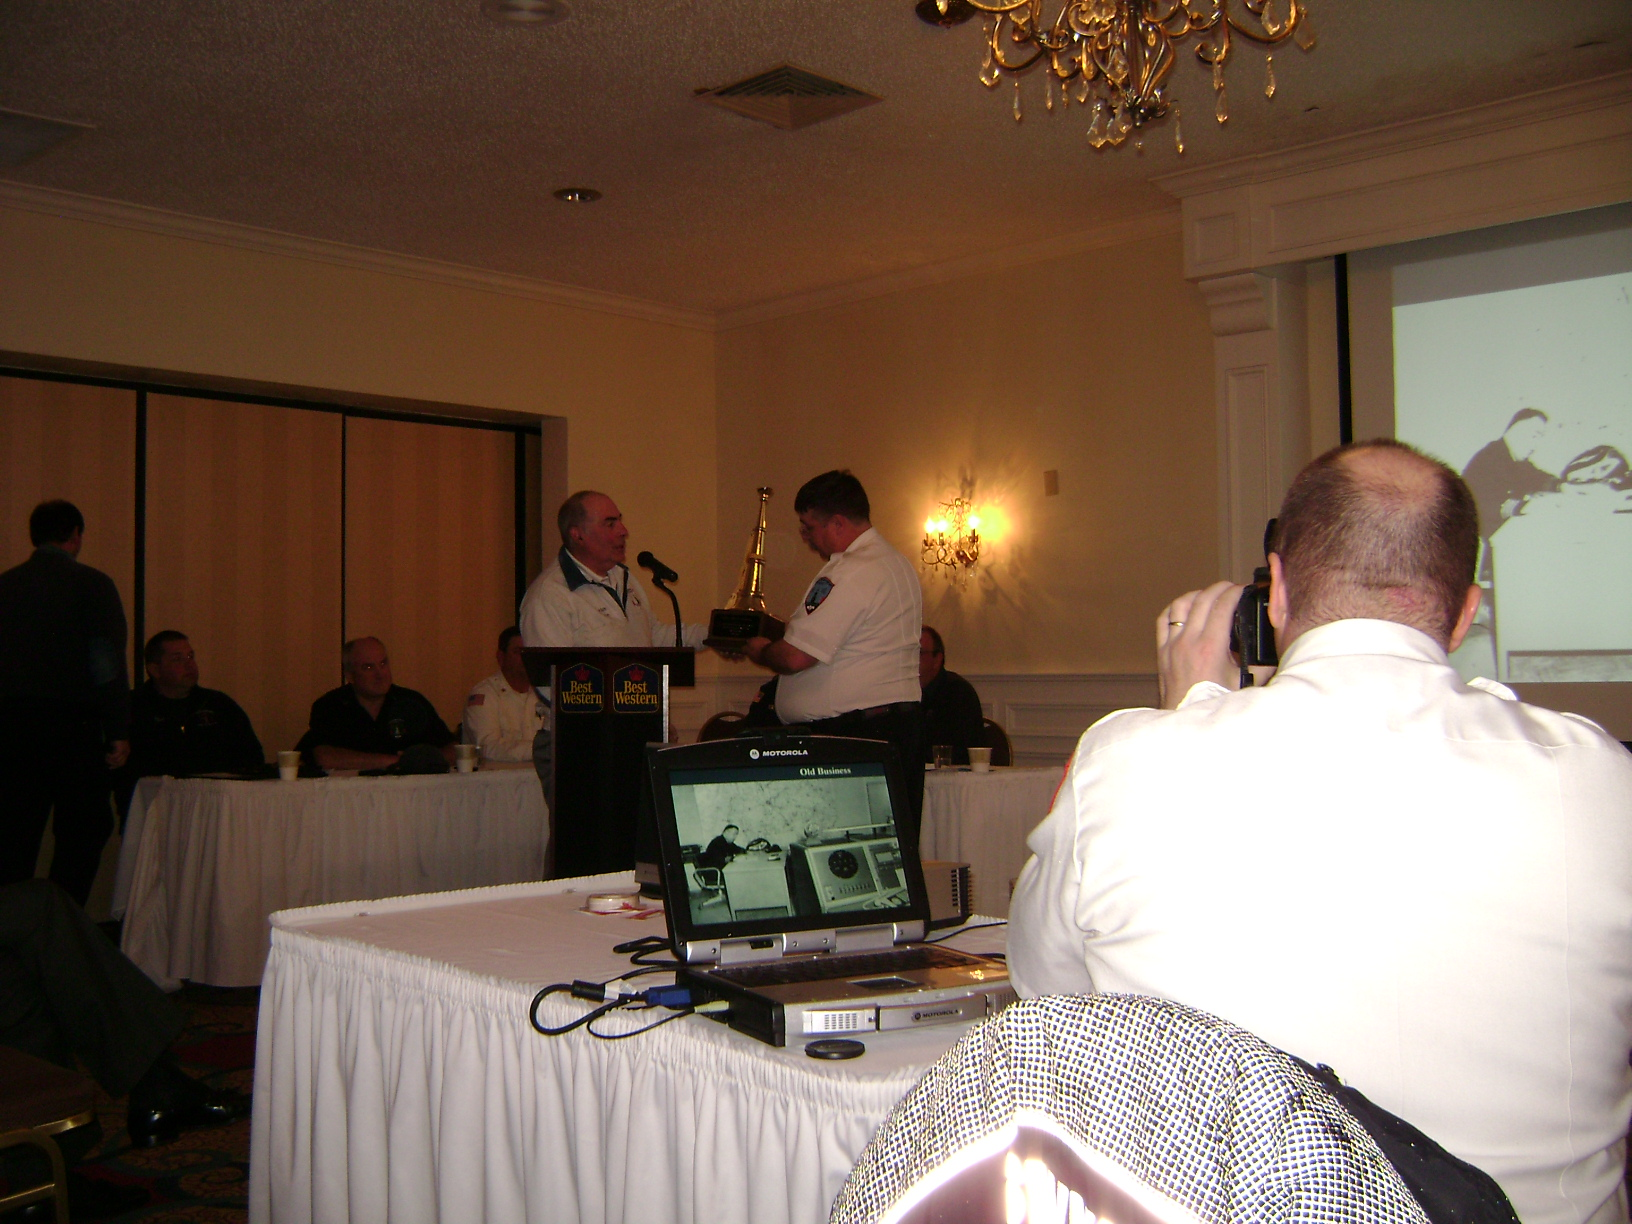 Chief Tirrell receiving 25 years of service award from President Harry Boynton 2011